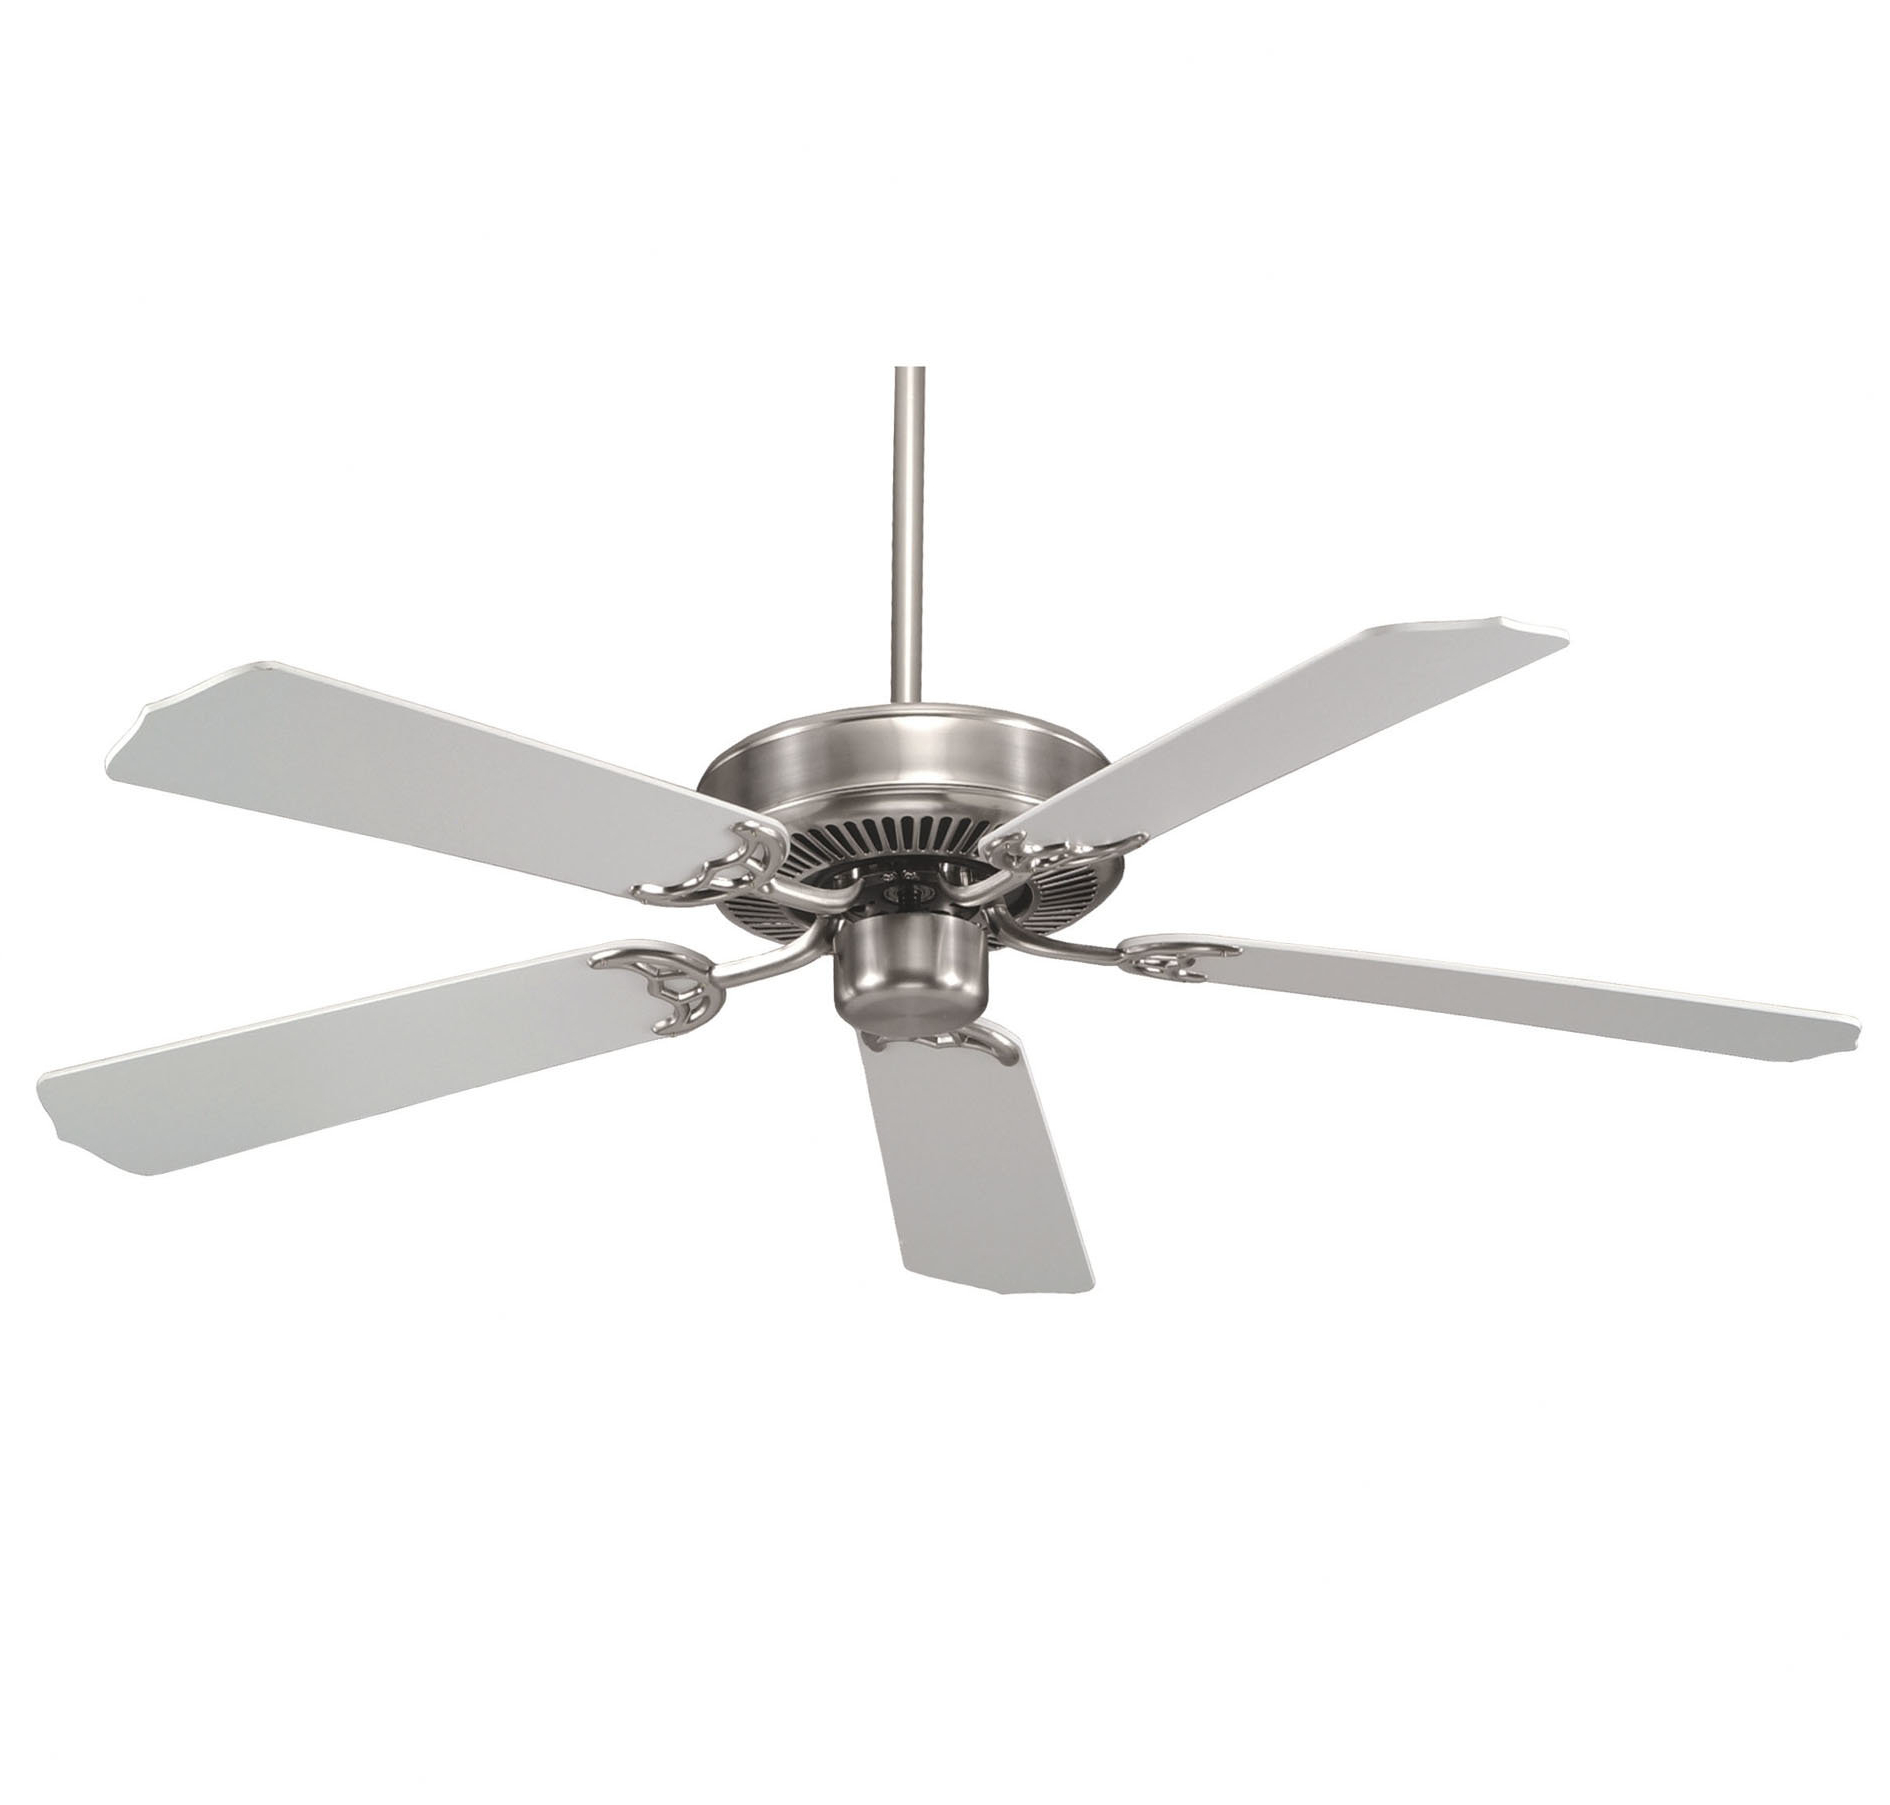 "52"" Weatherall 5 Blade Ceiling Fan Regarding Popular Hamlett 5 Blade Ceiling Fans (Gallery 5 of 20)"